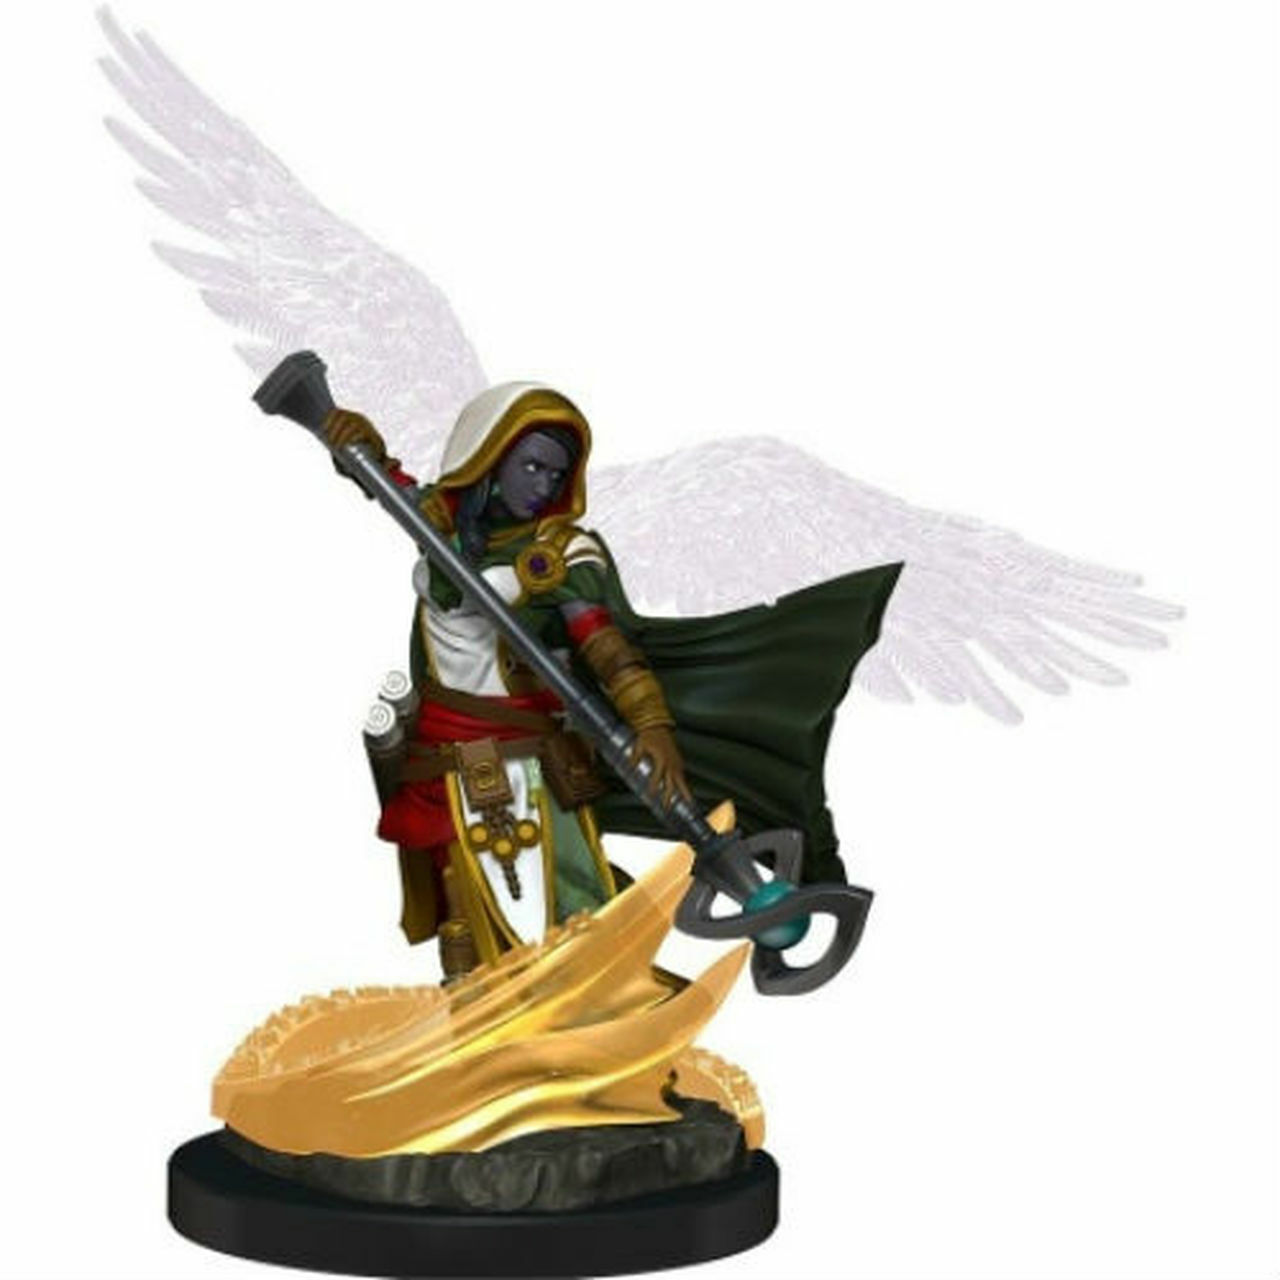 Aasimar Sorcerer aasimar female wizard d&d icons of the realms premium minis wizkids wzk73823